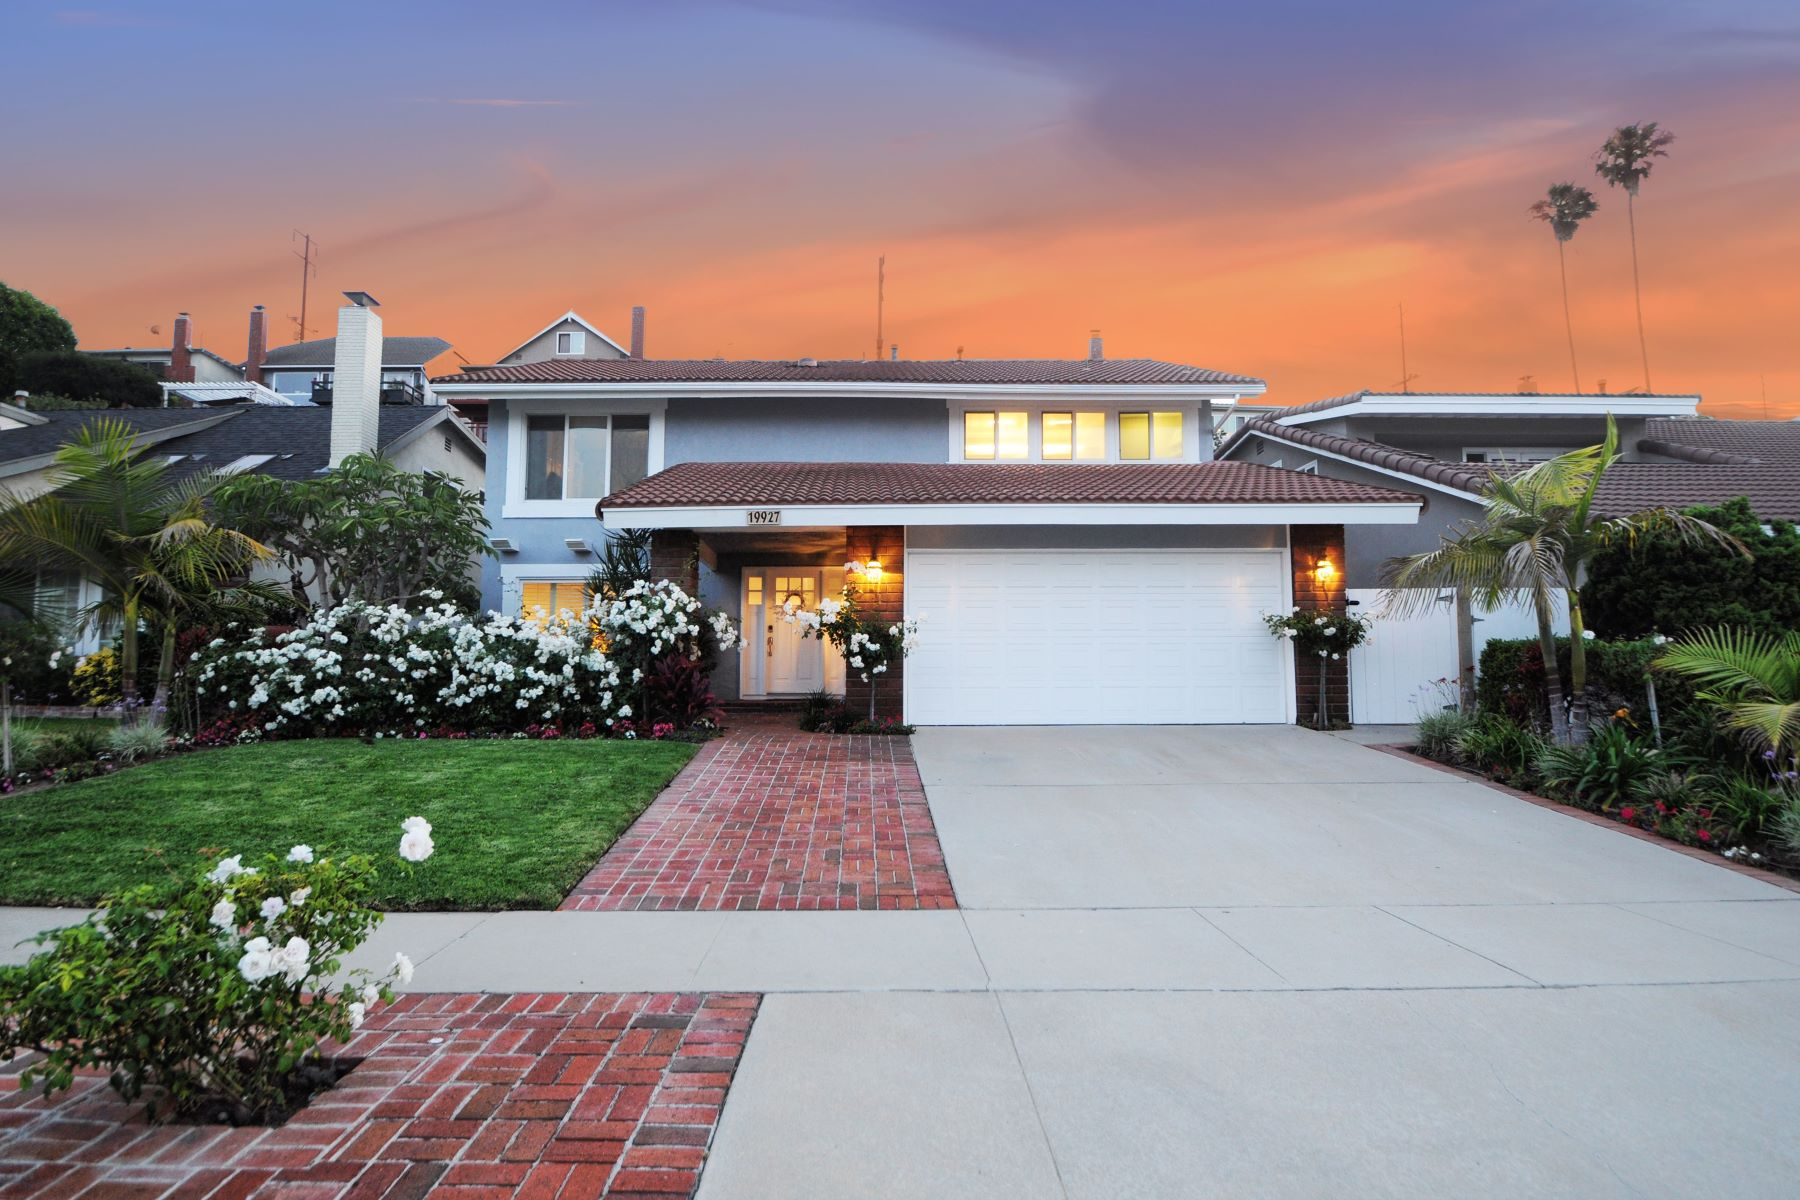 Single Family Homes for Sale at 19927 Tomlee Avenue, Torrance, CA 90503 19927 Tomlee Avenue Torrance, California 90503 United States